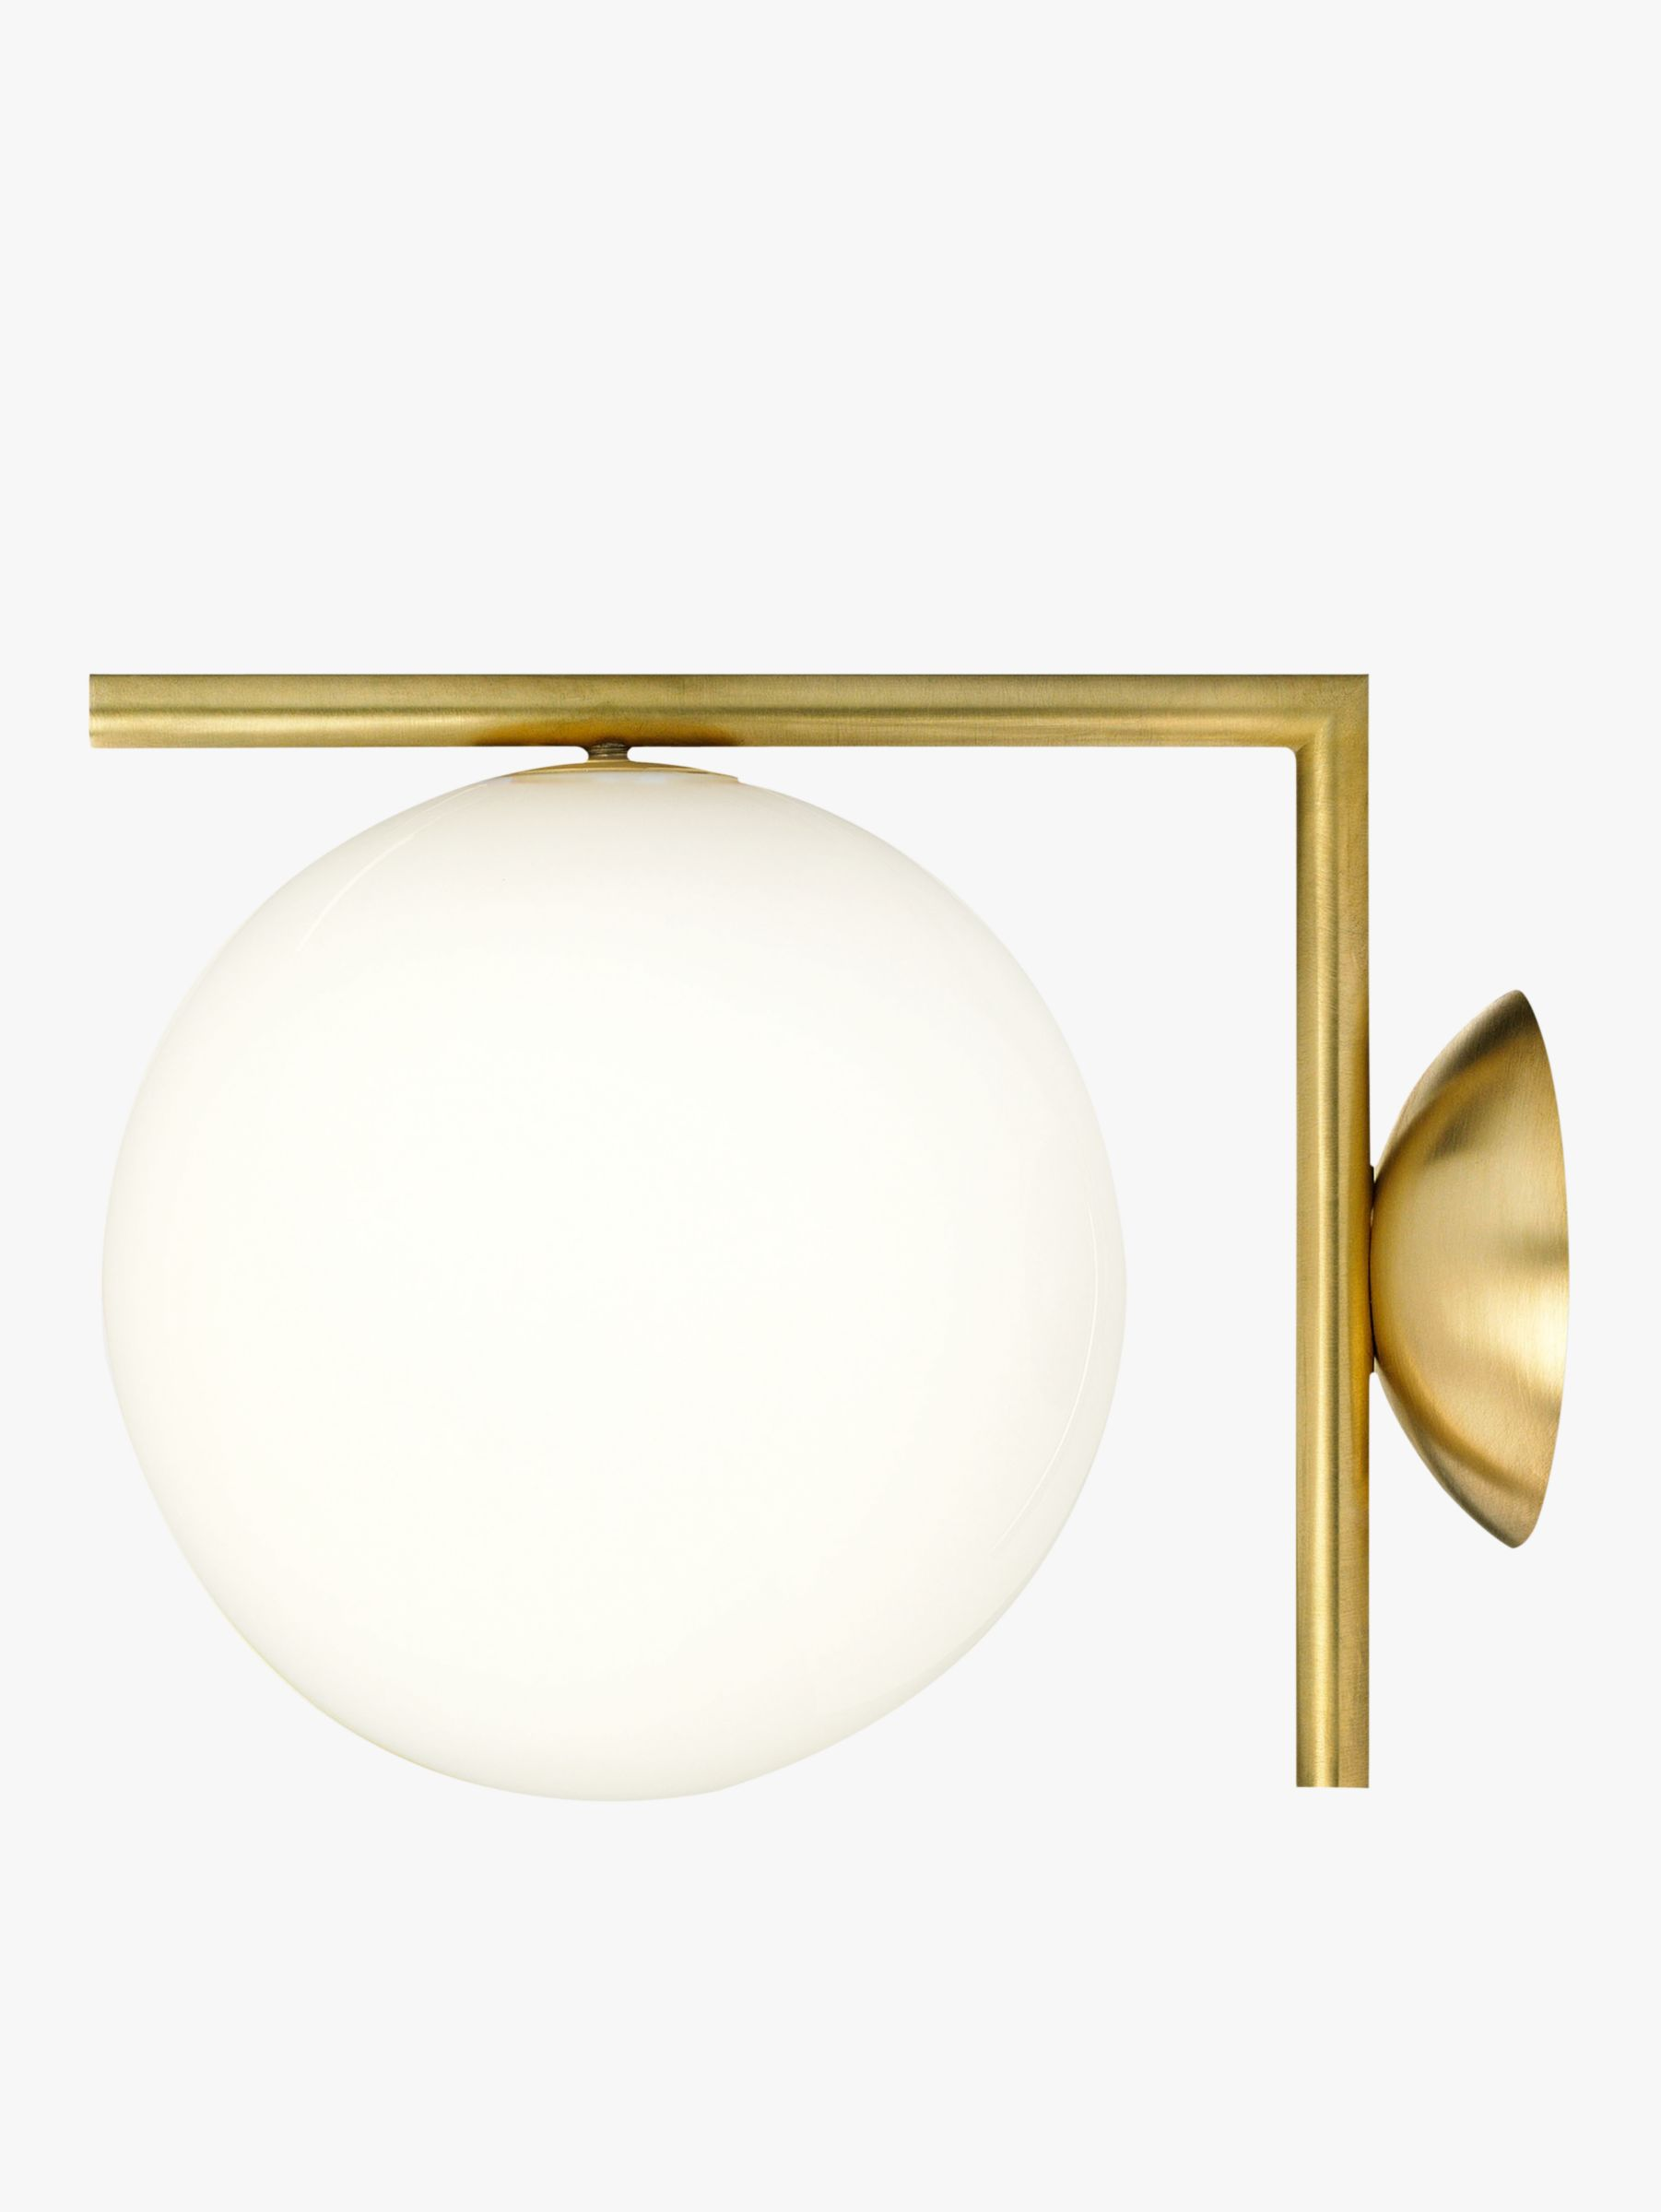 Flos Flos IC Lights 200 Wall Light, Brushed Brass